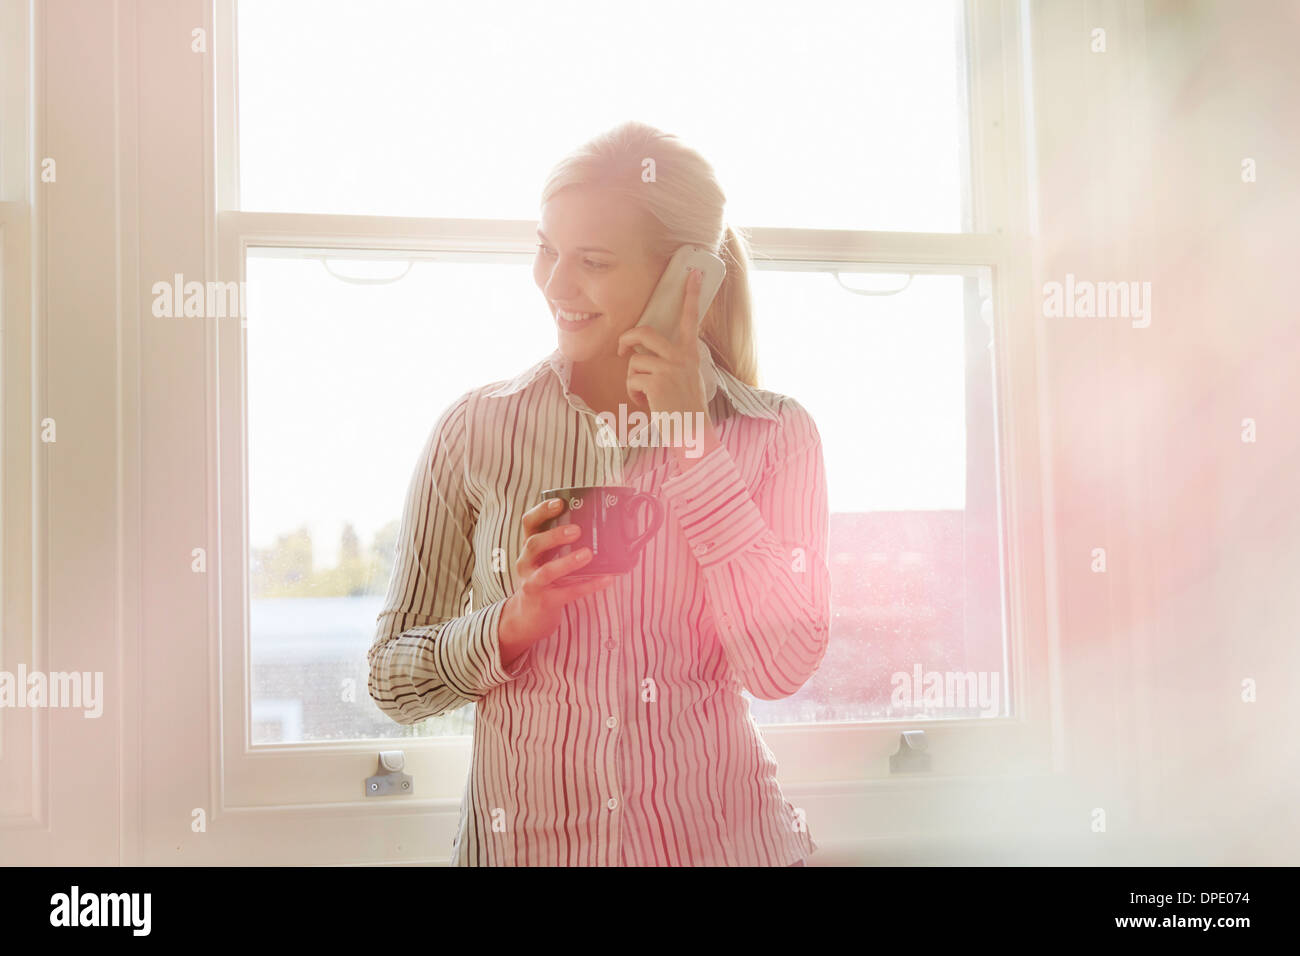 Young woman on phonecall, holding hot drink - Stock Image